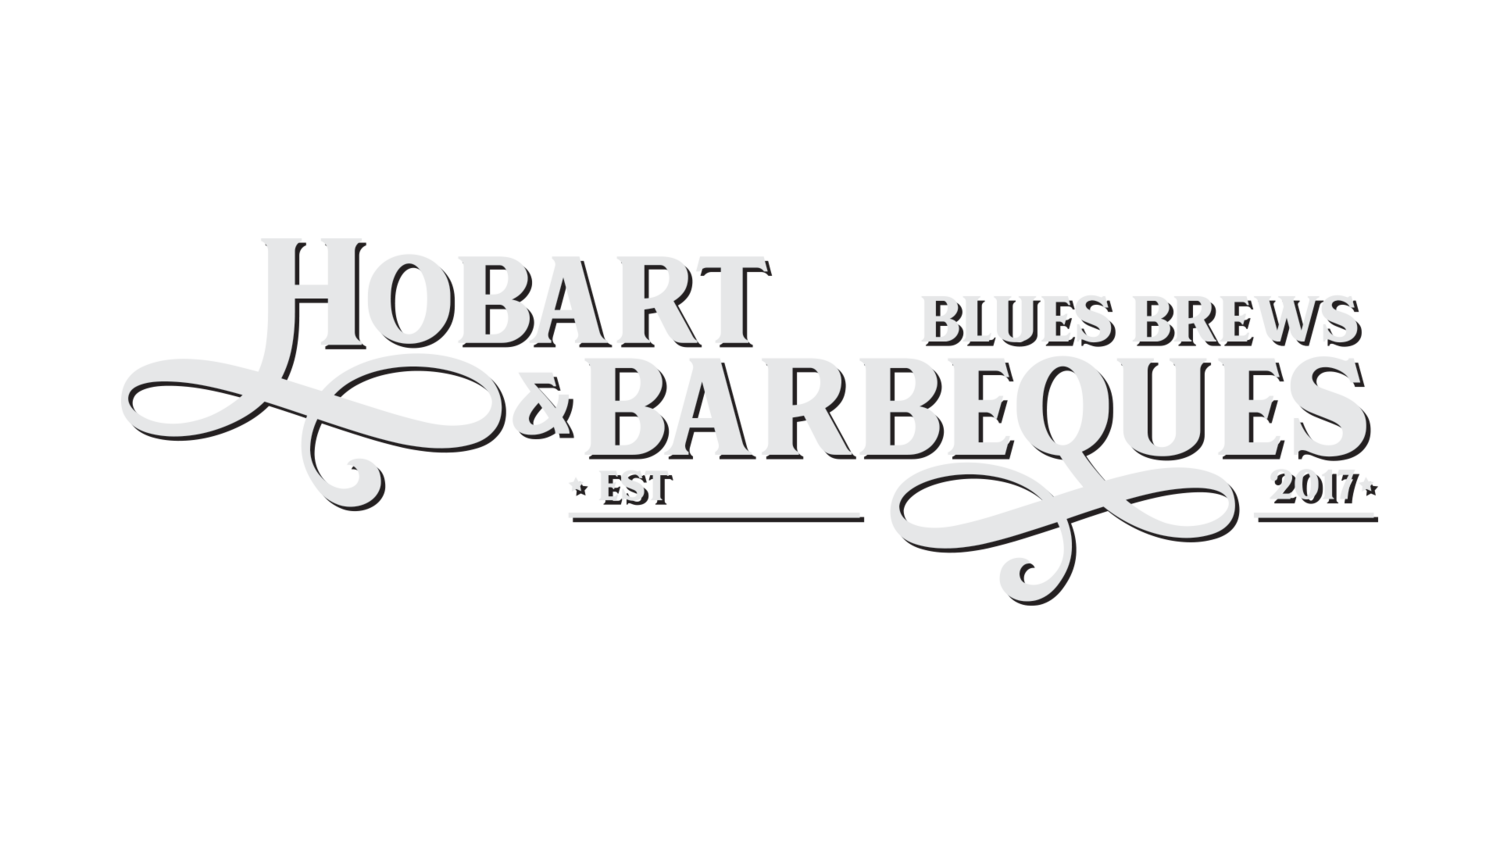 BLUES BREWS & BARBECUES